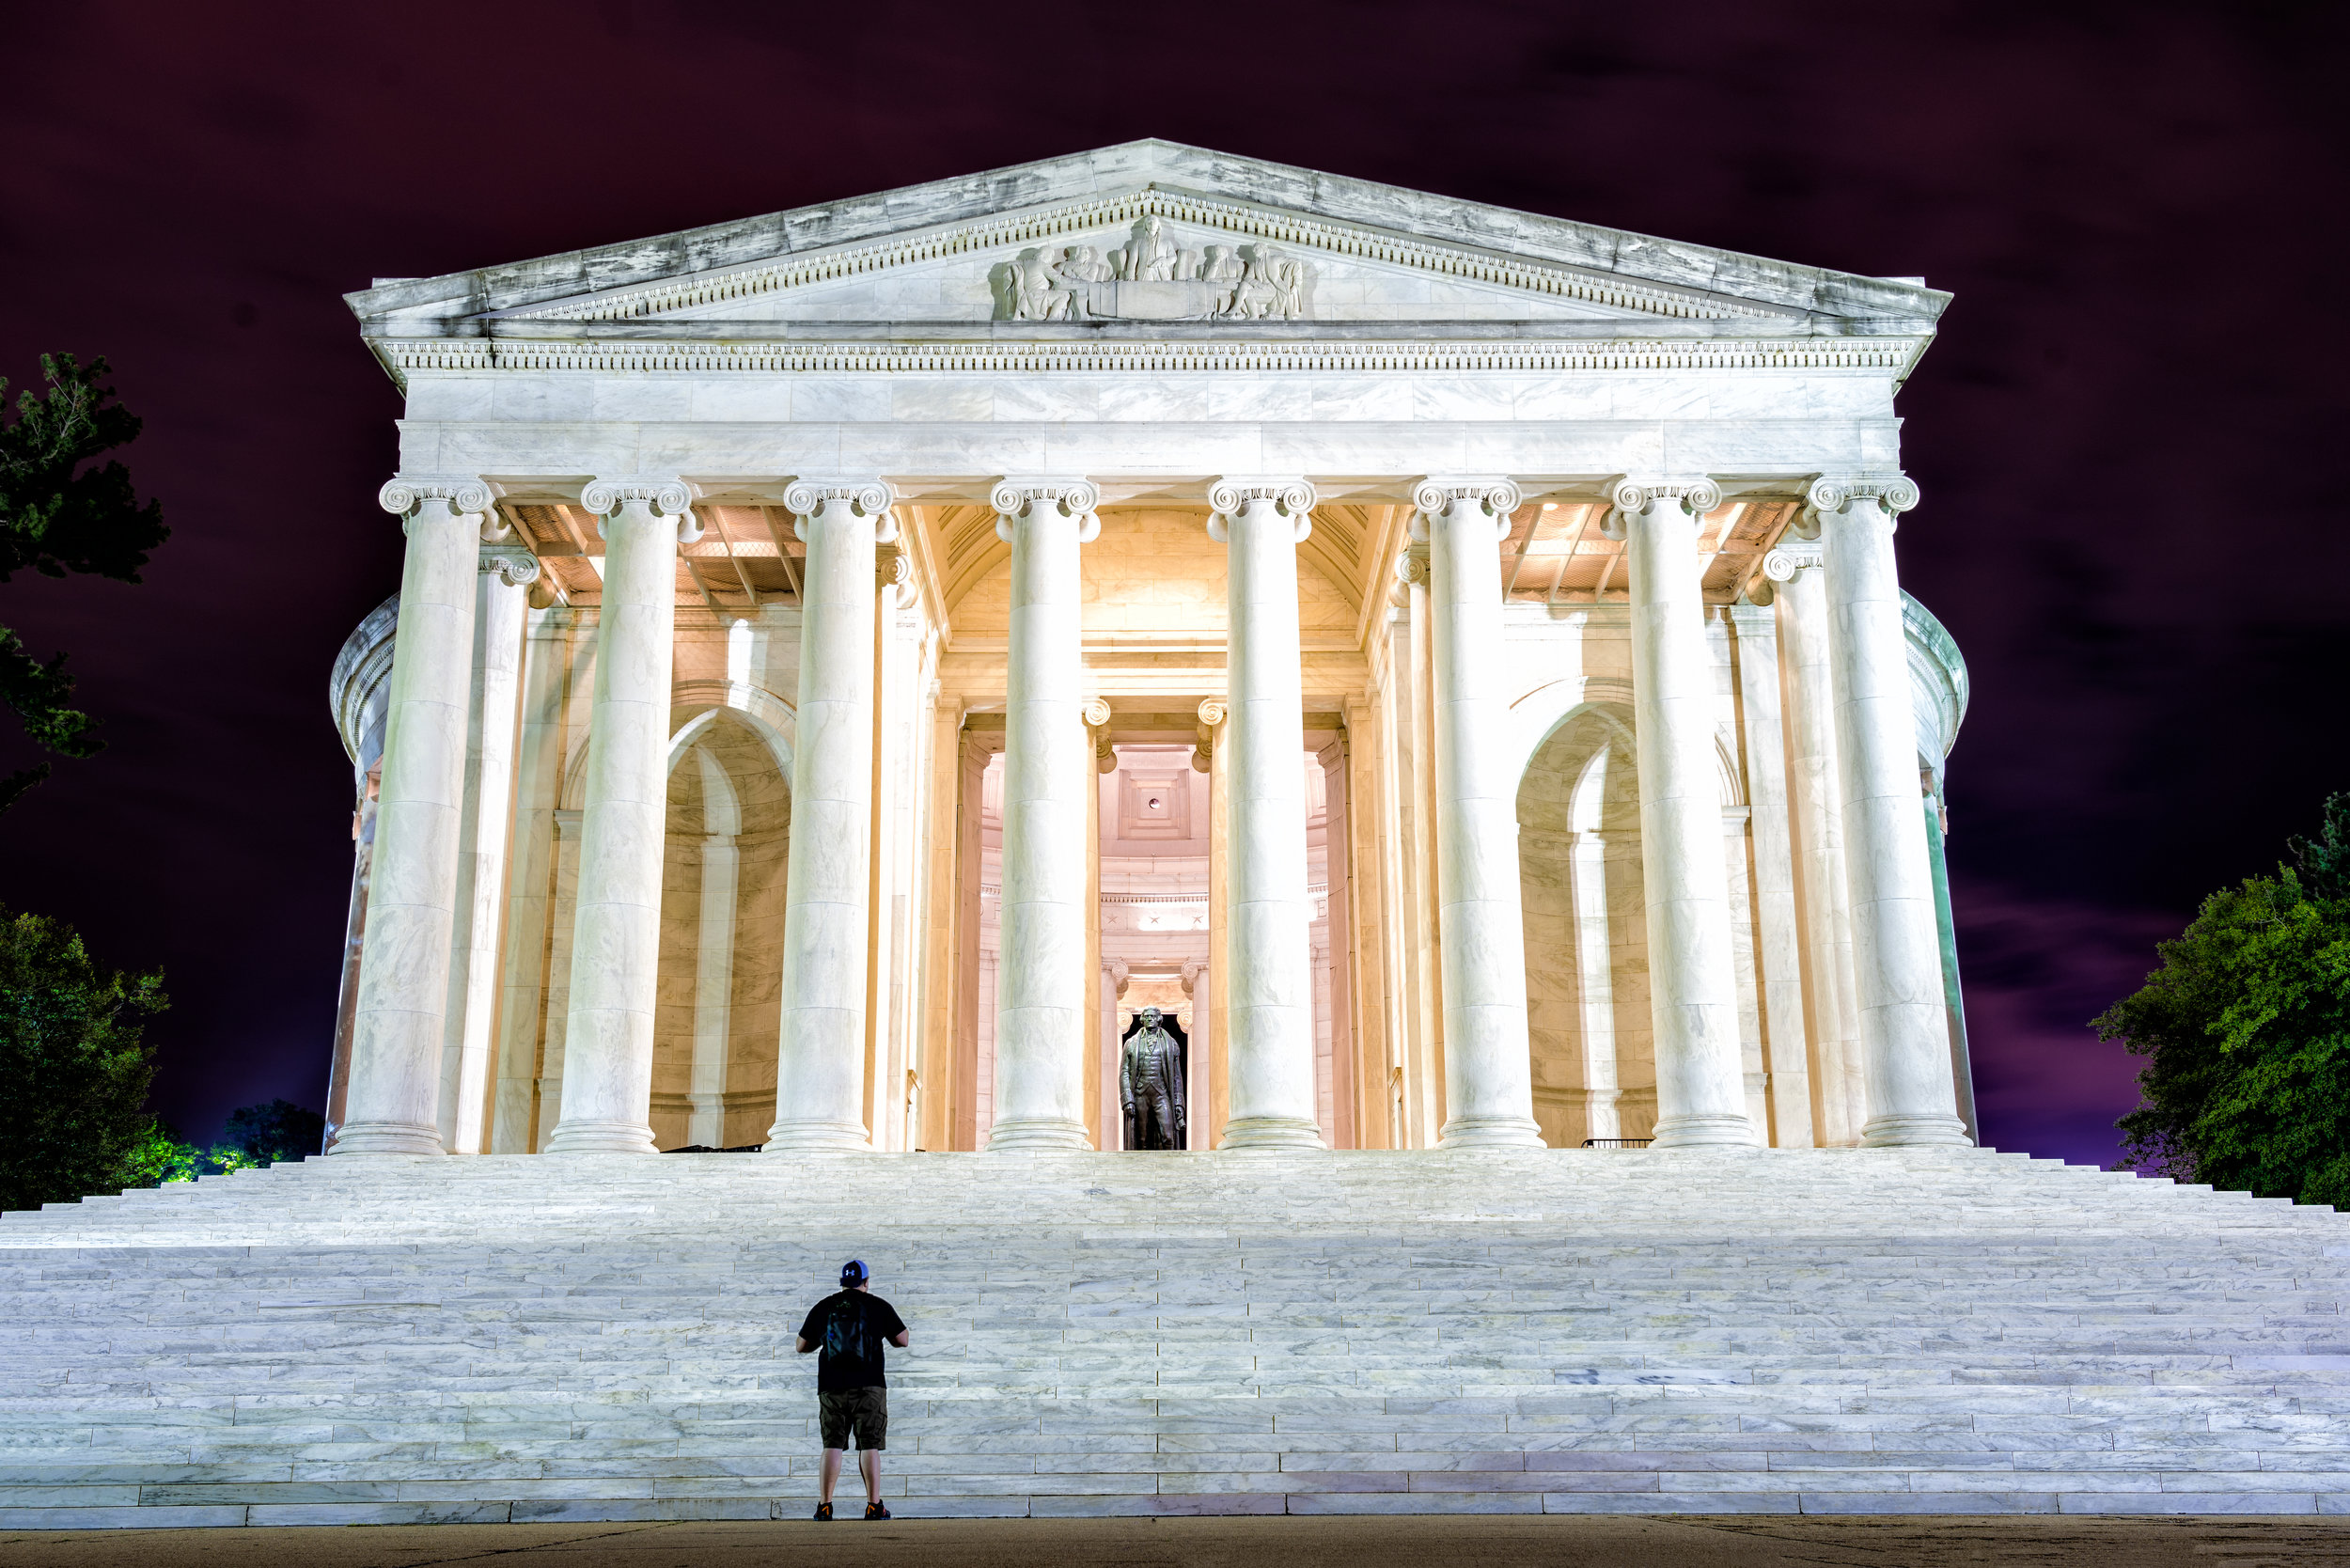 I took a few variations by the Jefferson Memorial as there are a few good areas to really capture them. - 30 sec exposure - Base of the stairs